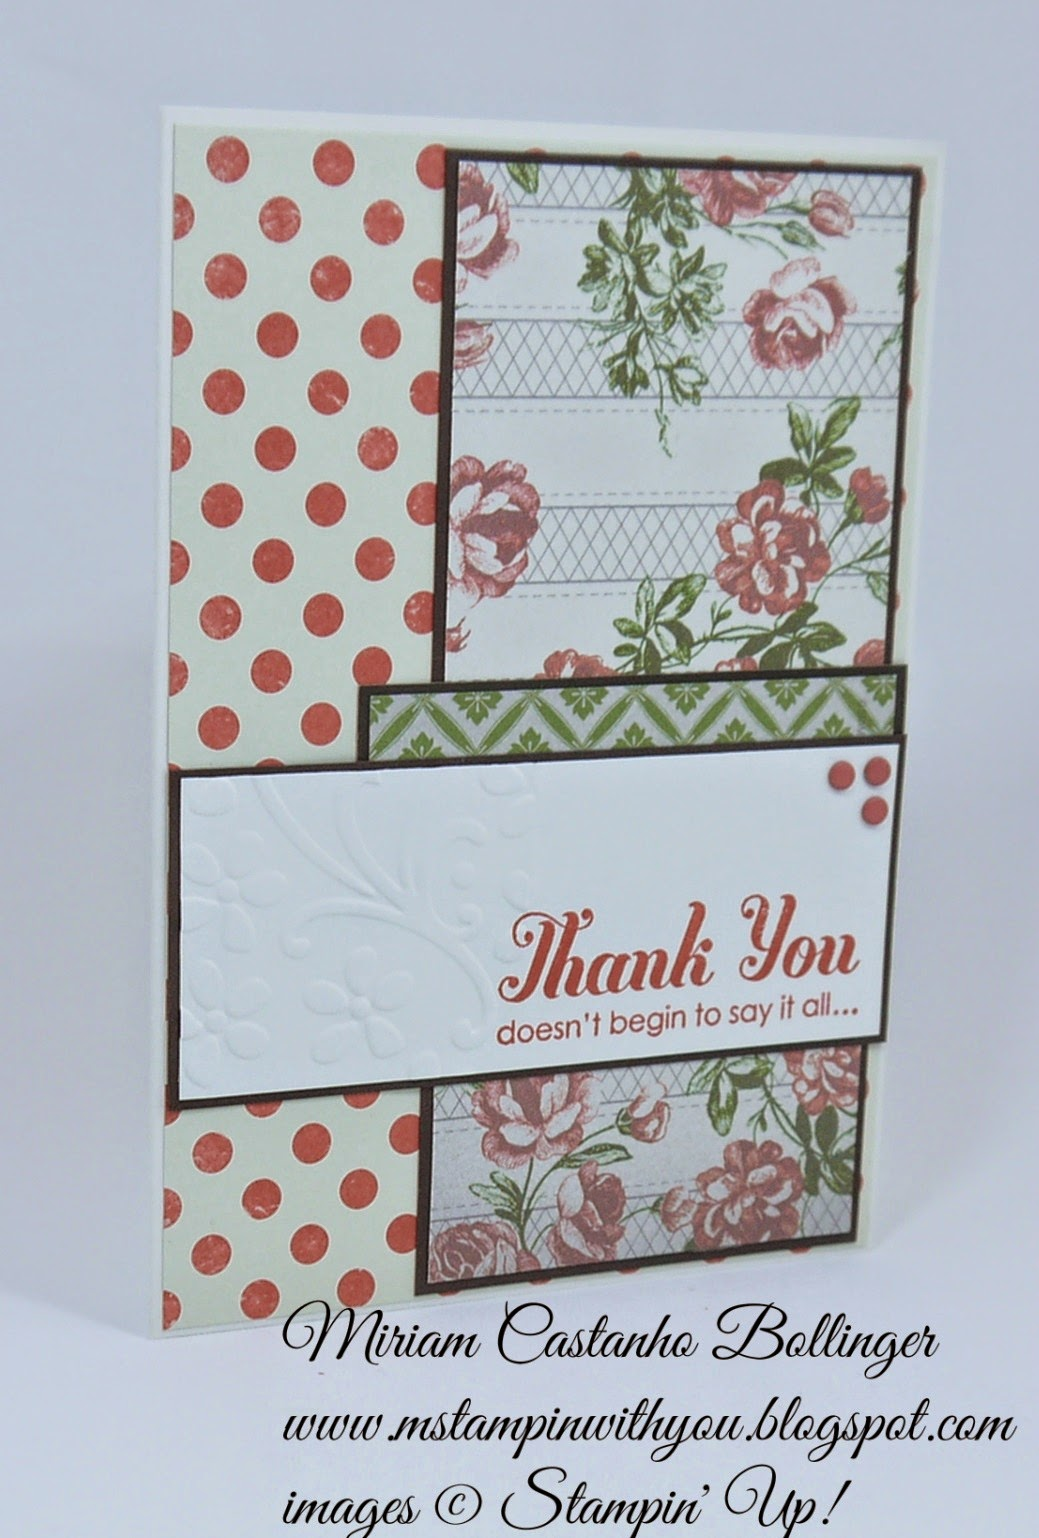 Miriam Castanho Bollinger, #mstampinwithyou, stampin up, demonstrator, sc, thank you, lots of thanks, afternoon picnic dsp, elegant bouquet tief, su